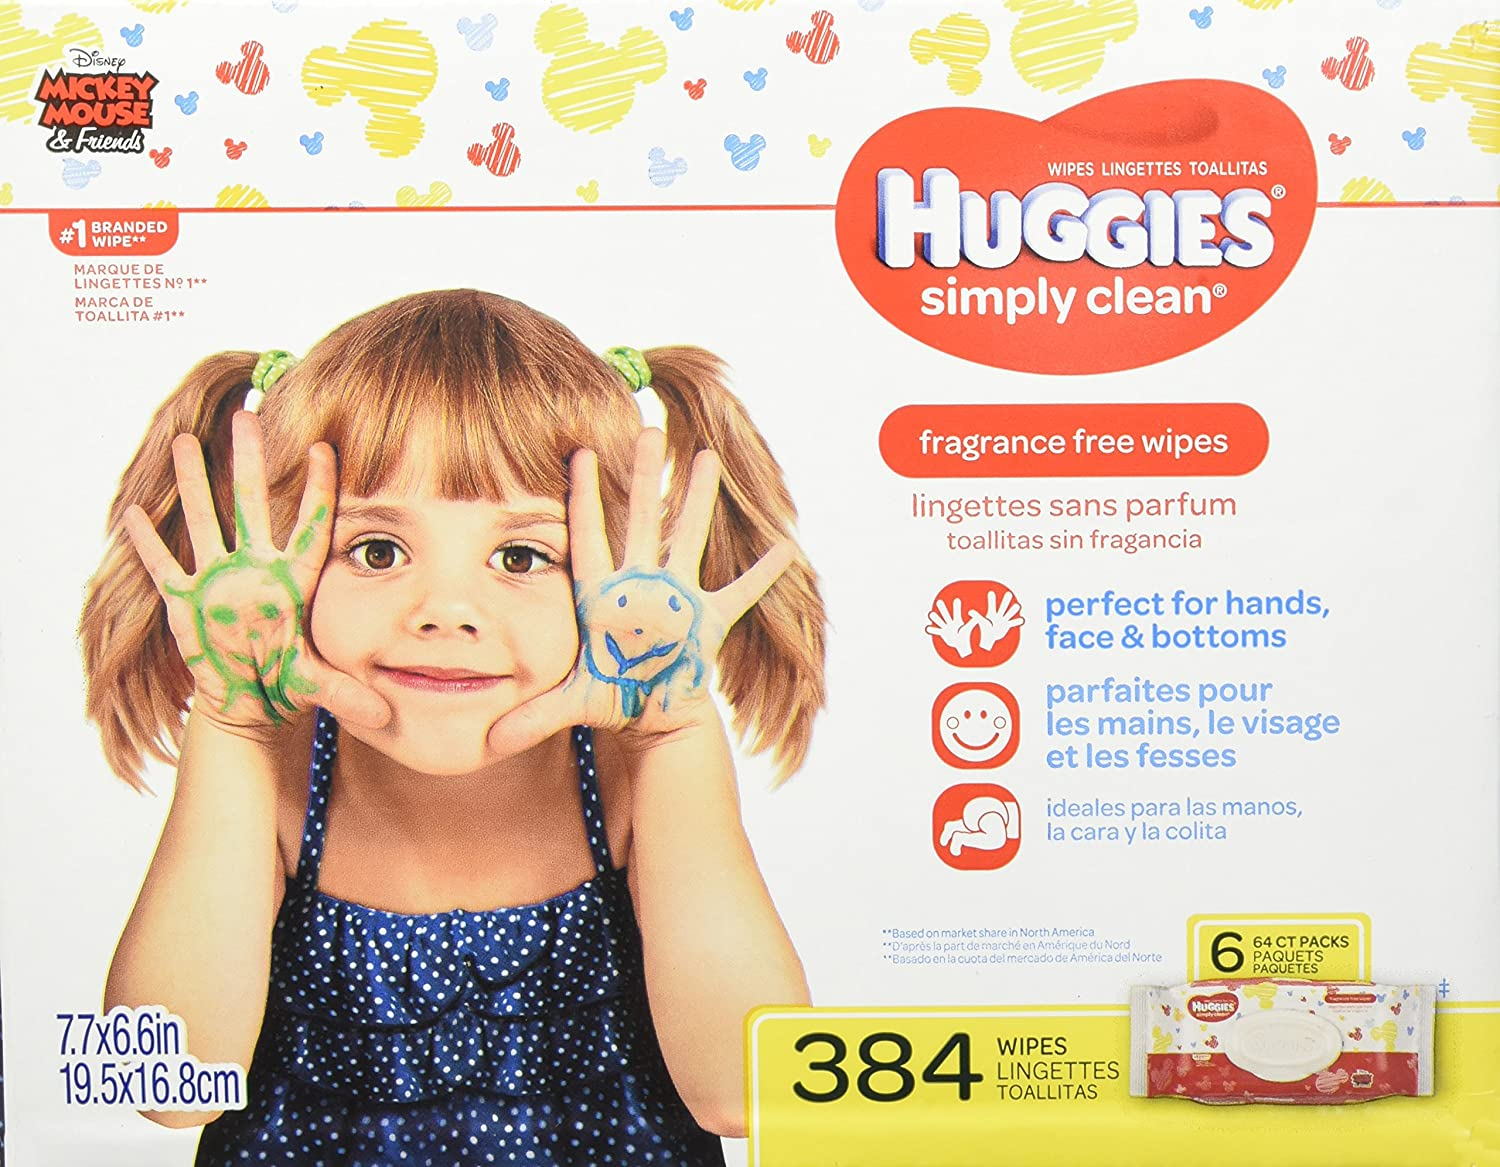 HUGGIES SIMPLY CLEAN Fragrance-Free Baby Wipes, Hypoallergenic (6X Refill Packs, 432 Count) Kimberly-Clark Corp. CA